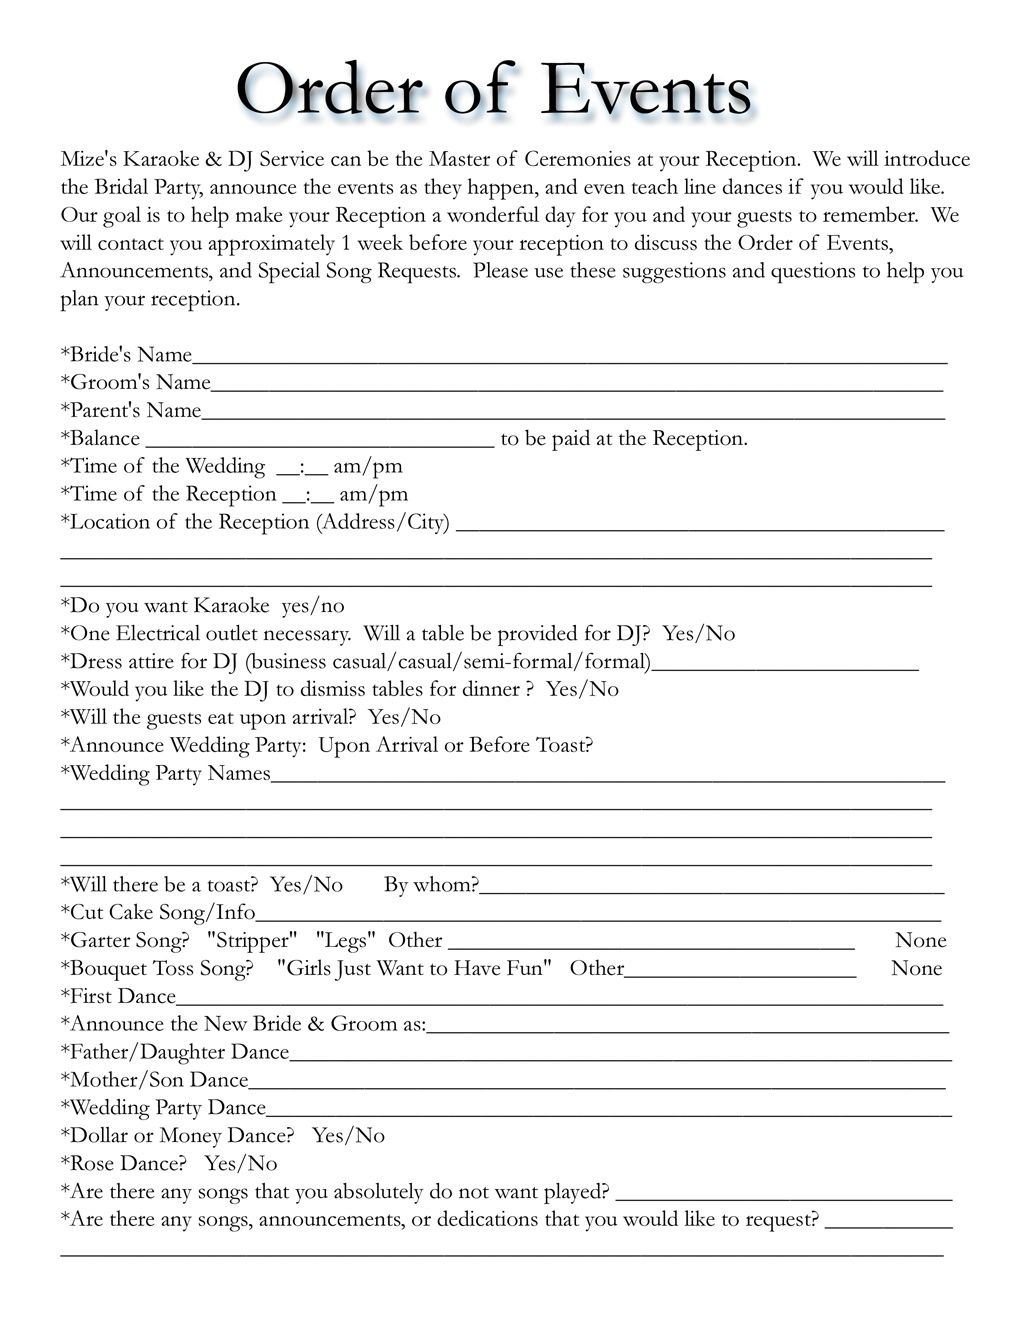 Order Of Events For Wedding Dj  Mobile Dj In   Wedding With Wedding Agenda Templates